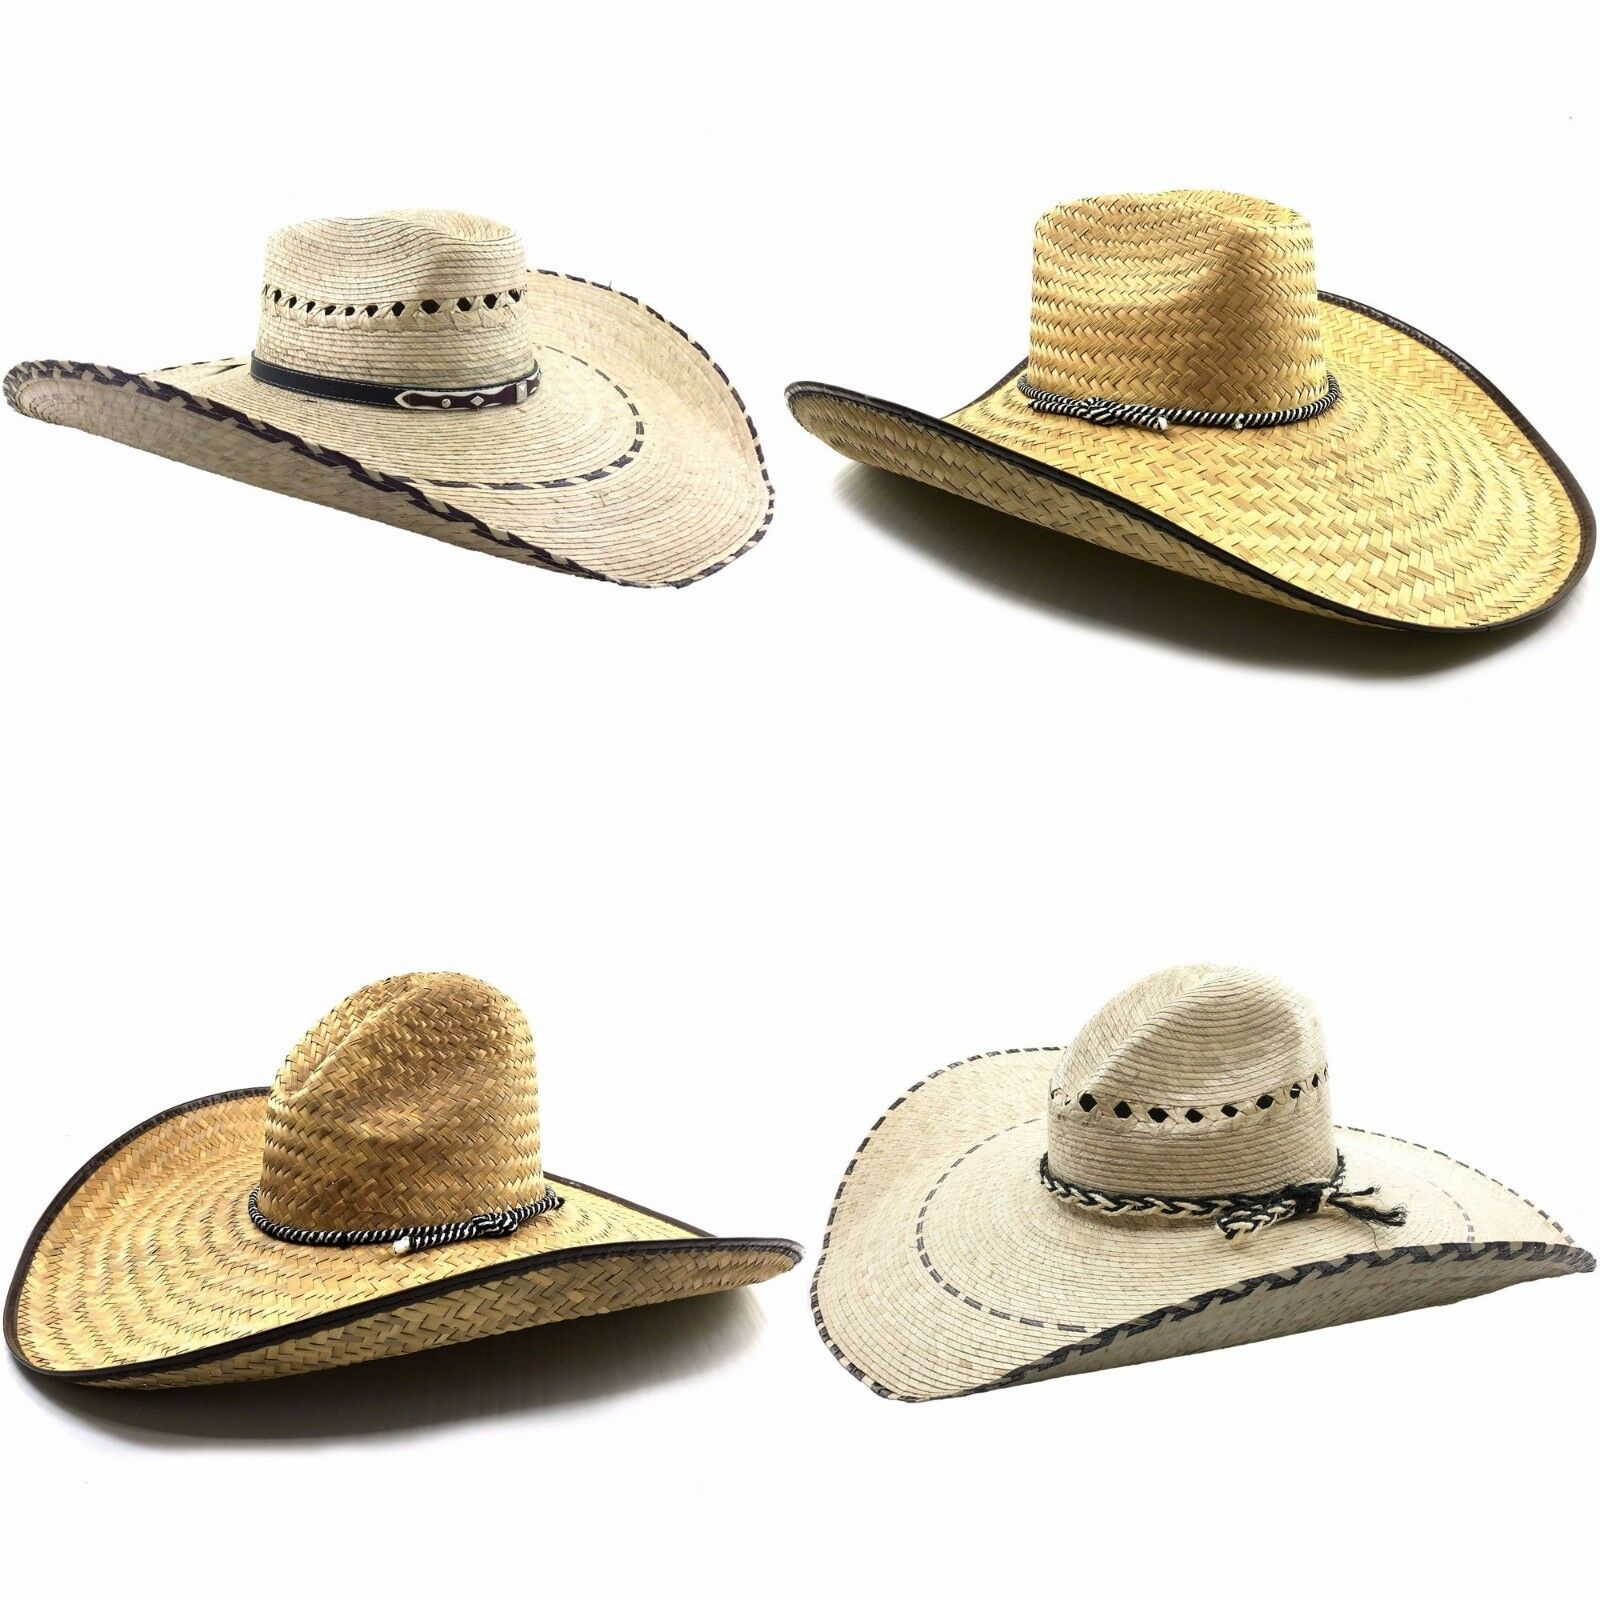 Details about Milani Guacho Cowboy Ranch Large Straw Hat - NEW 20